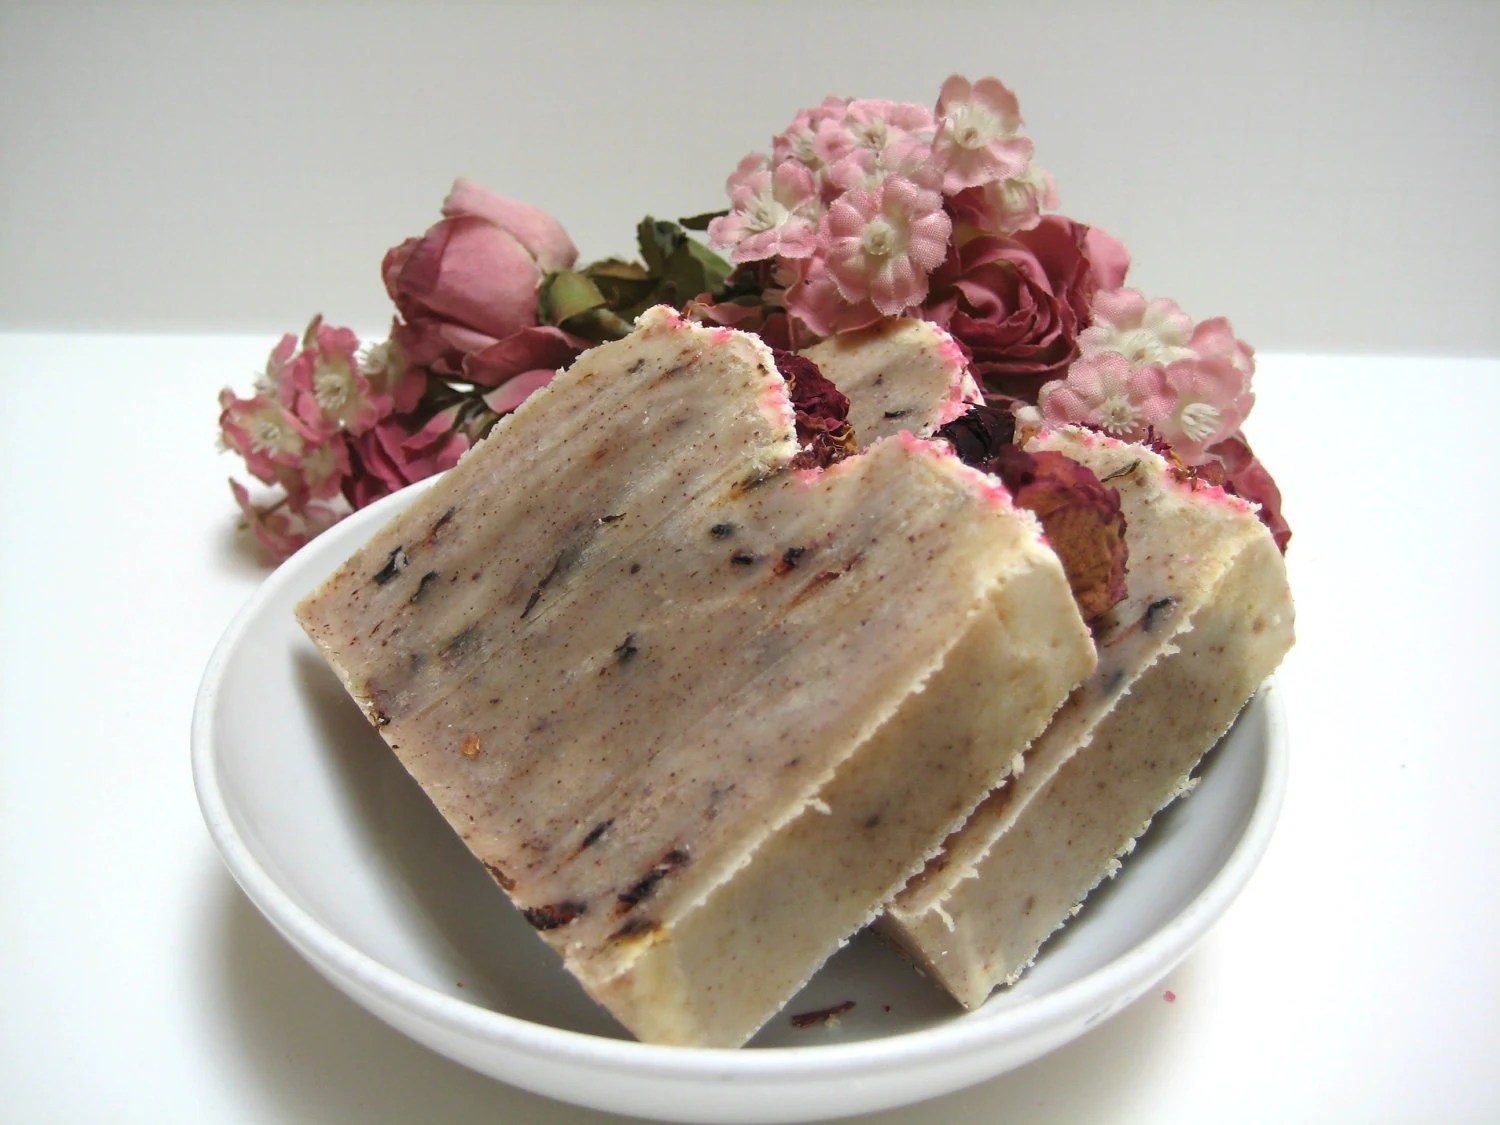 Rosehip and Geranium Soap - Spa Quality with botanical essences - Vegan Artisan soap from scratch